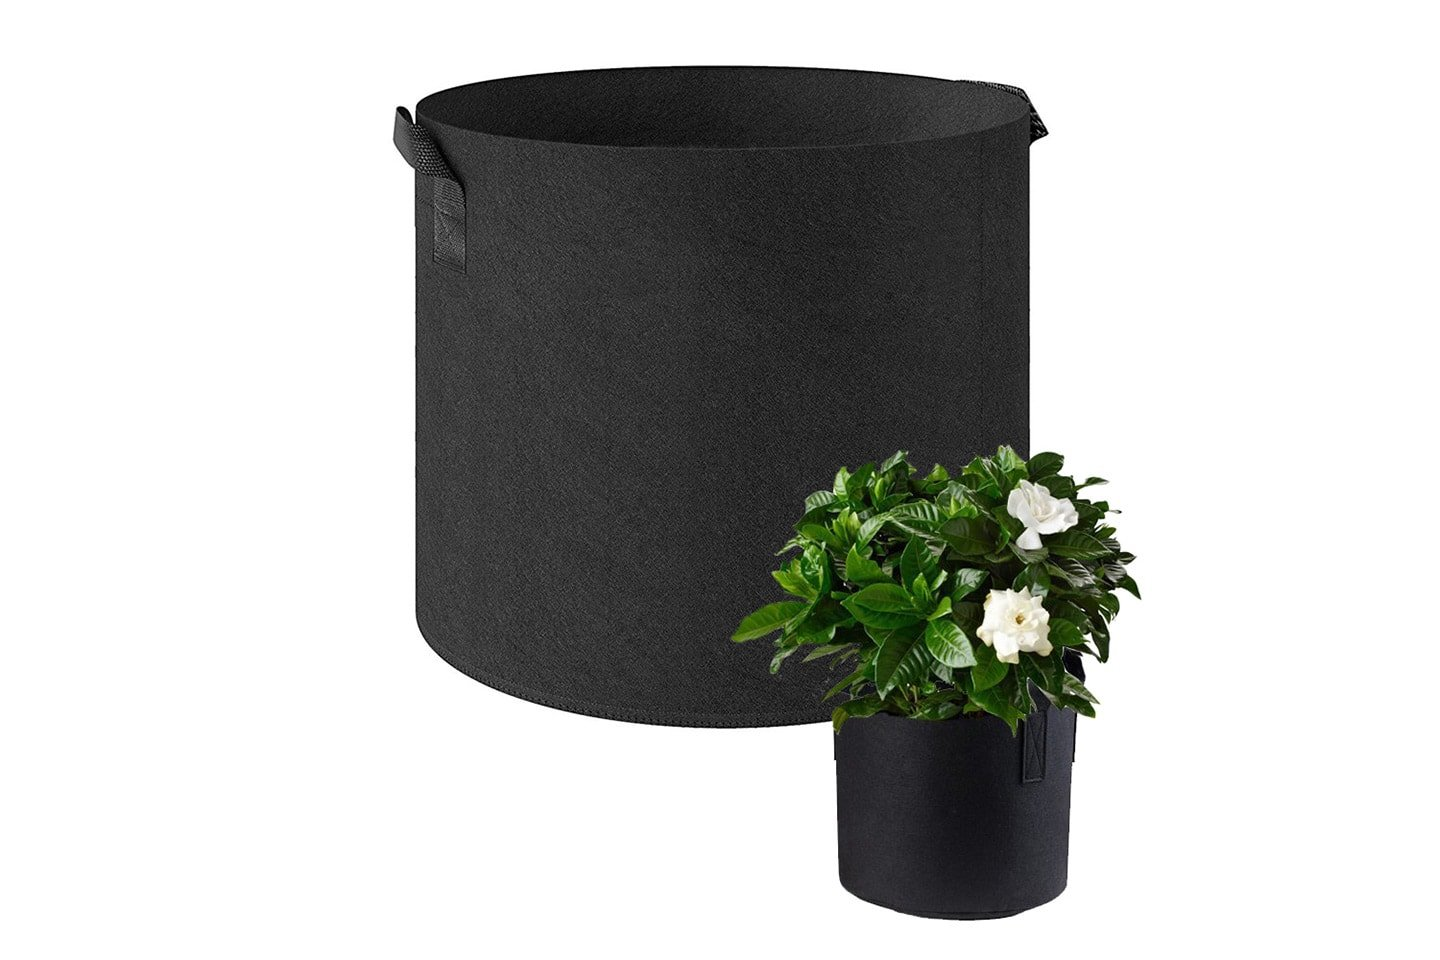 Voksekurv for planter